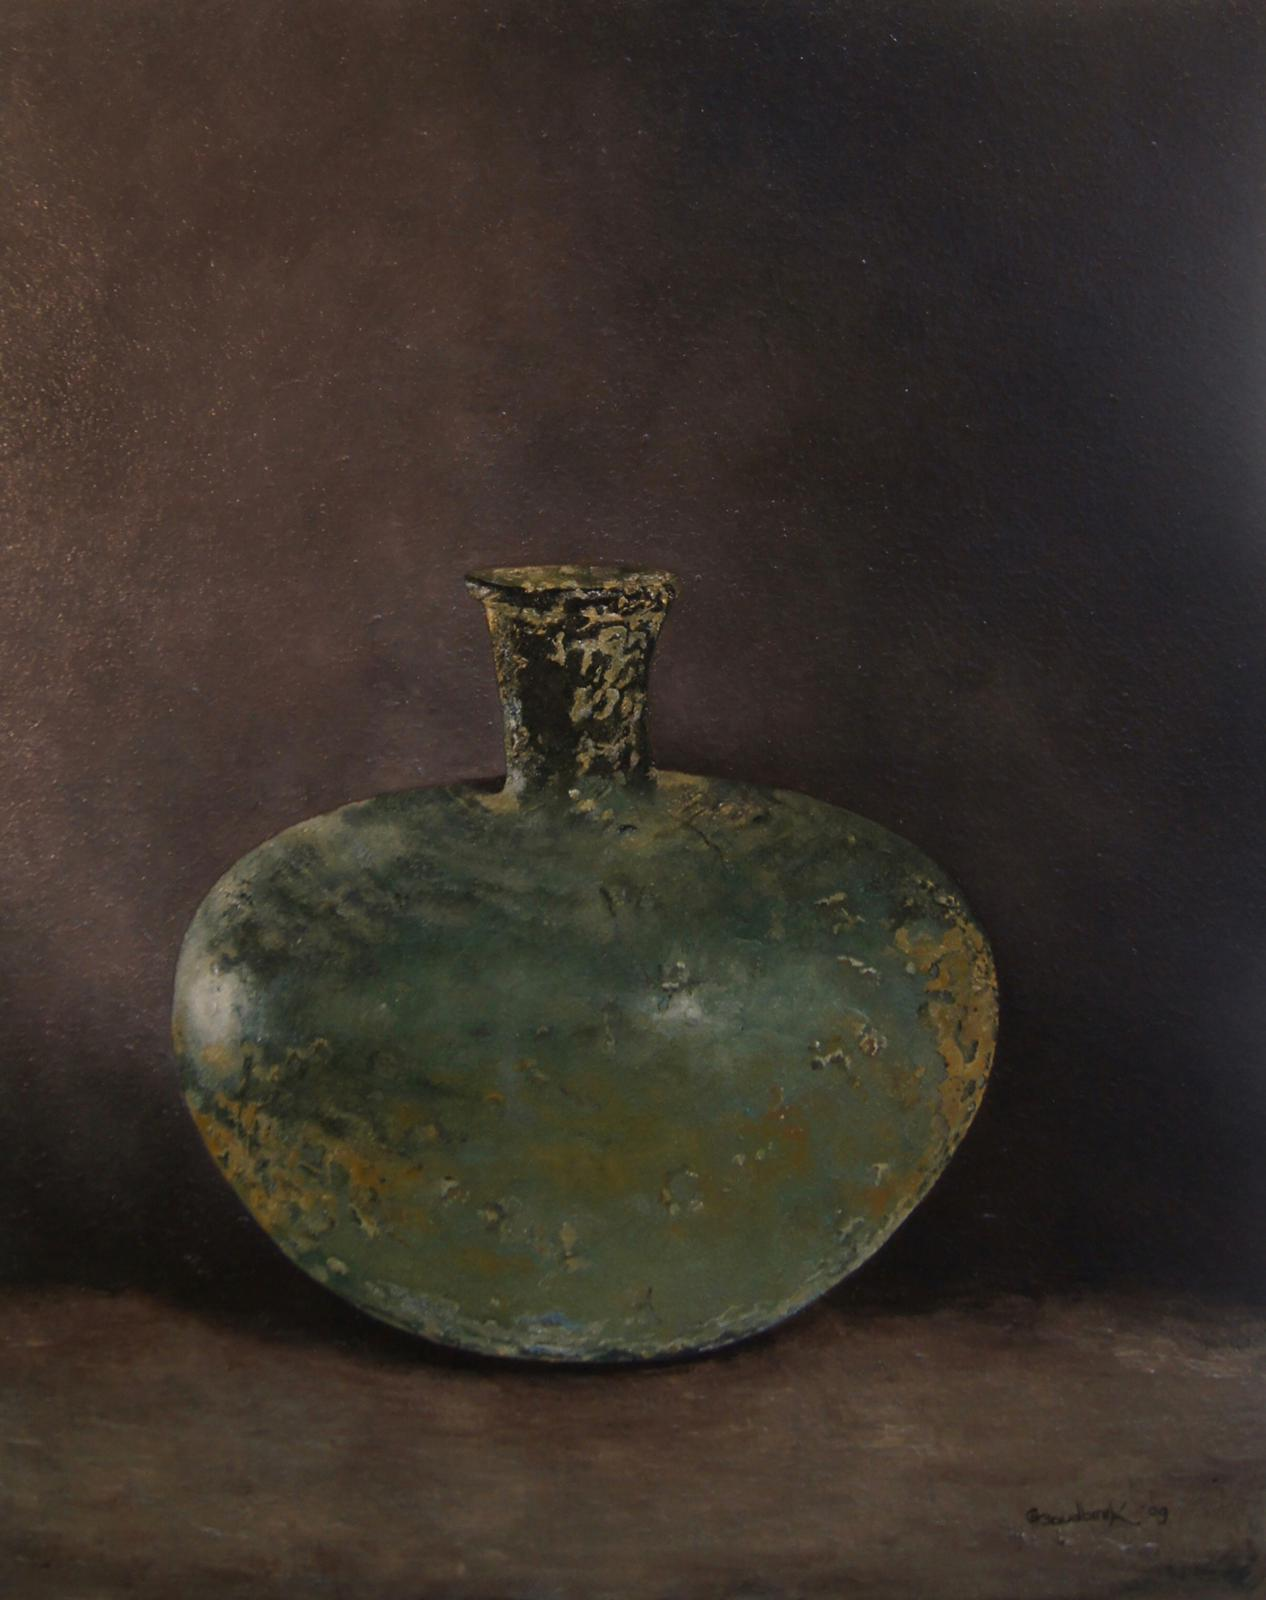 'Antique green vase'